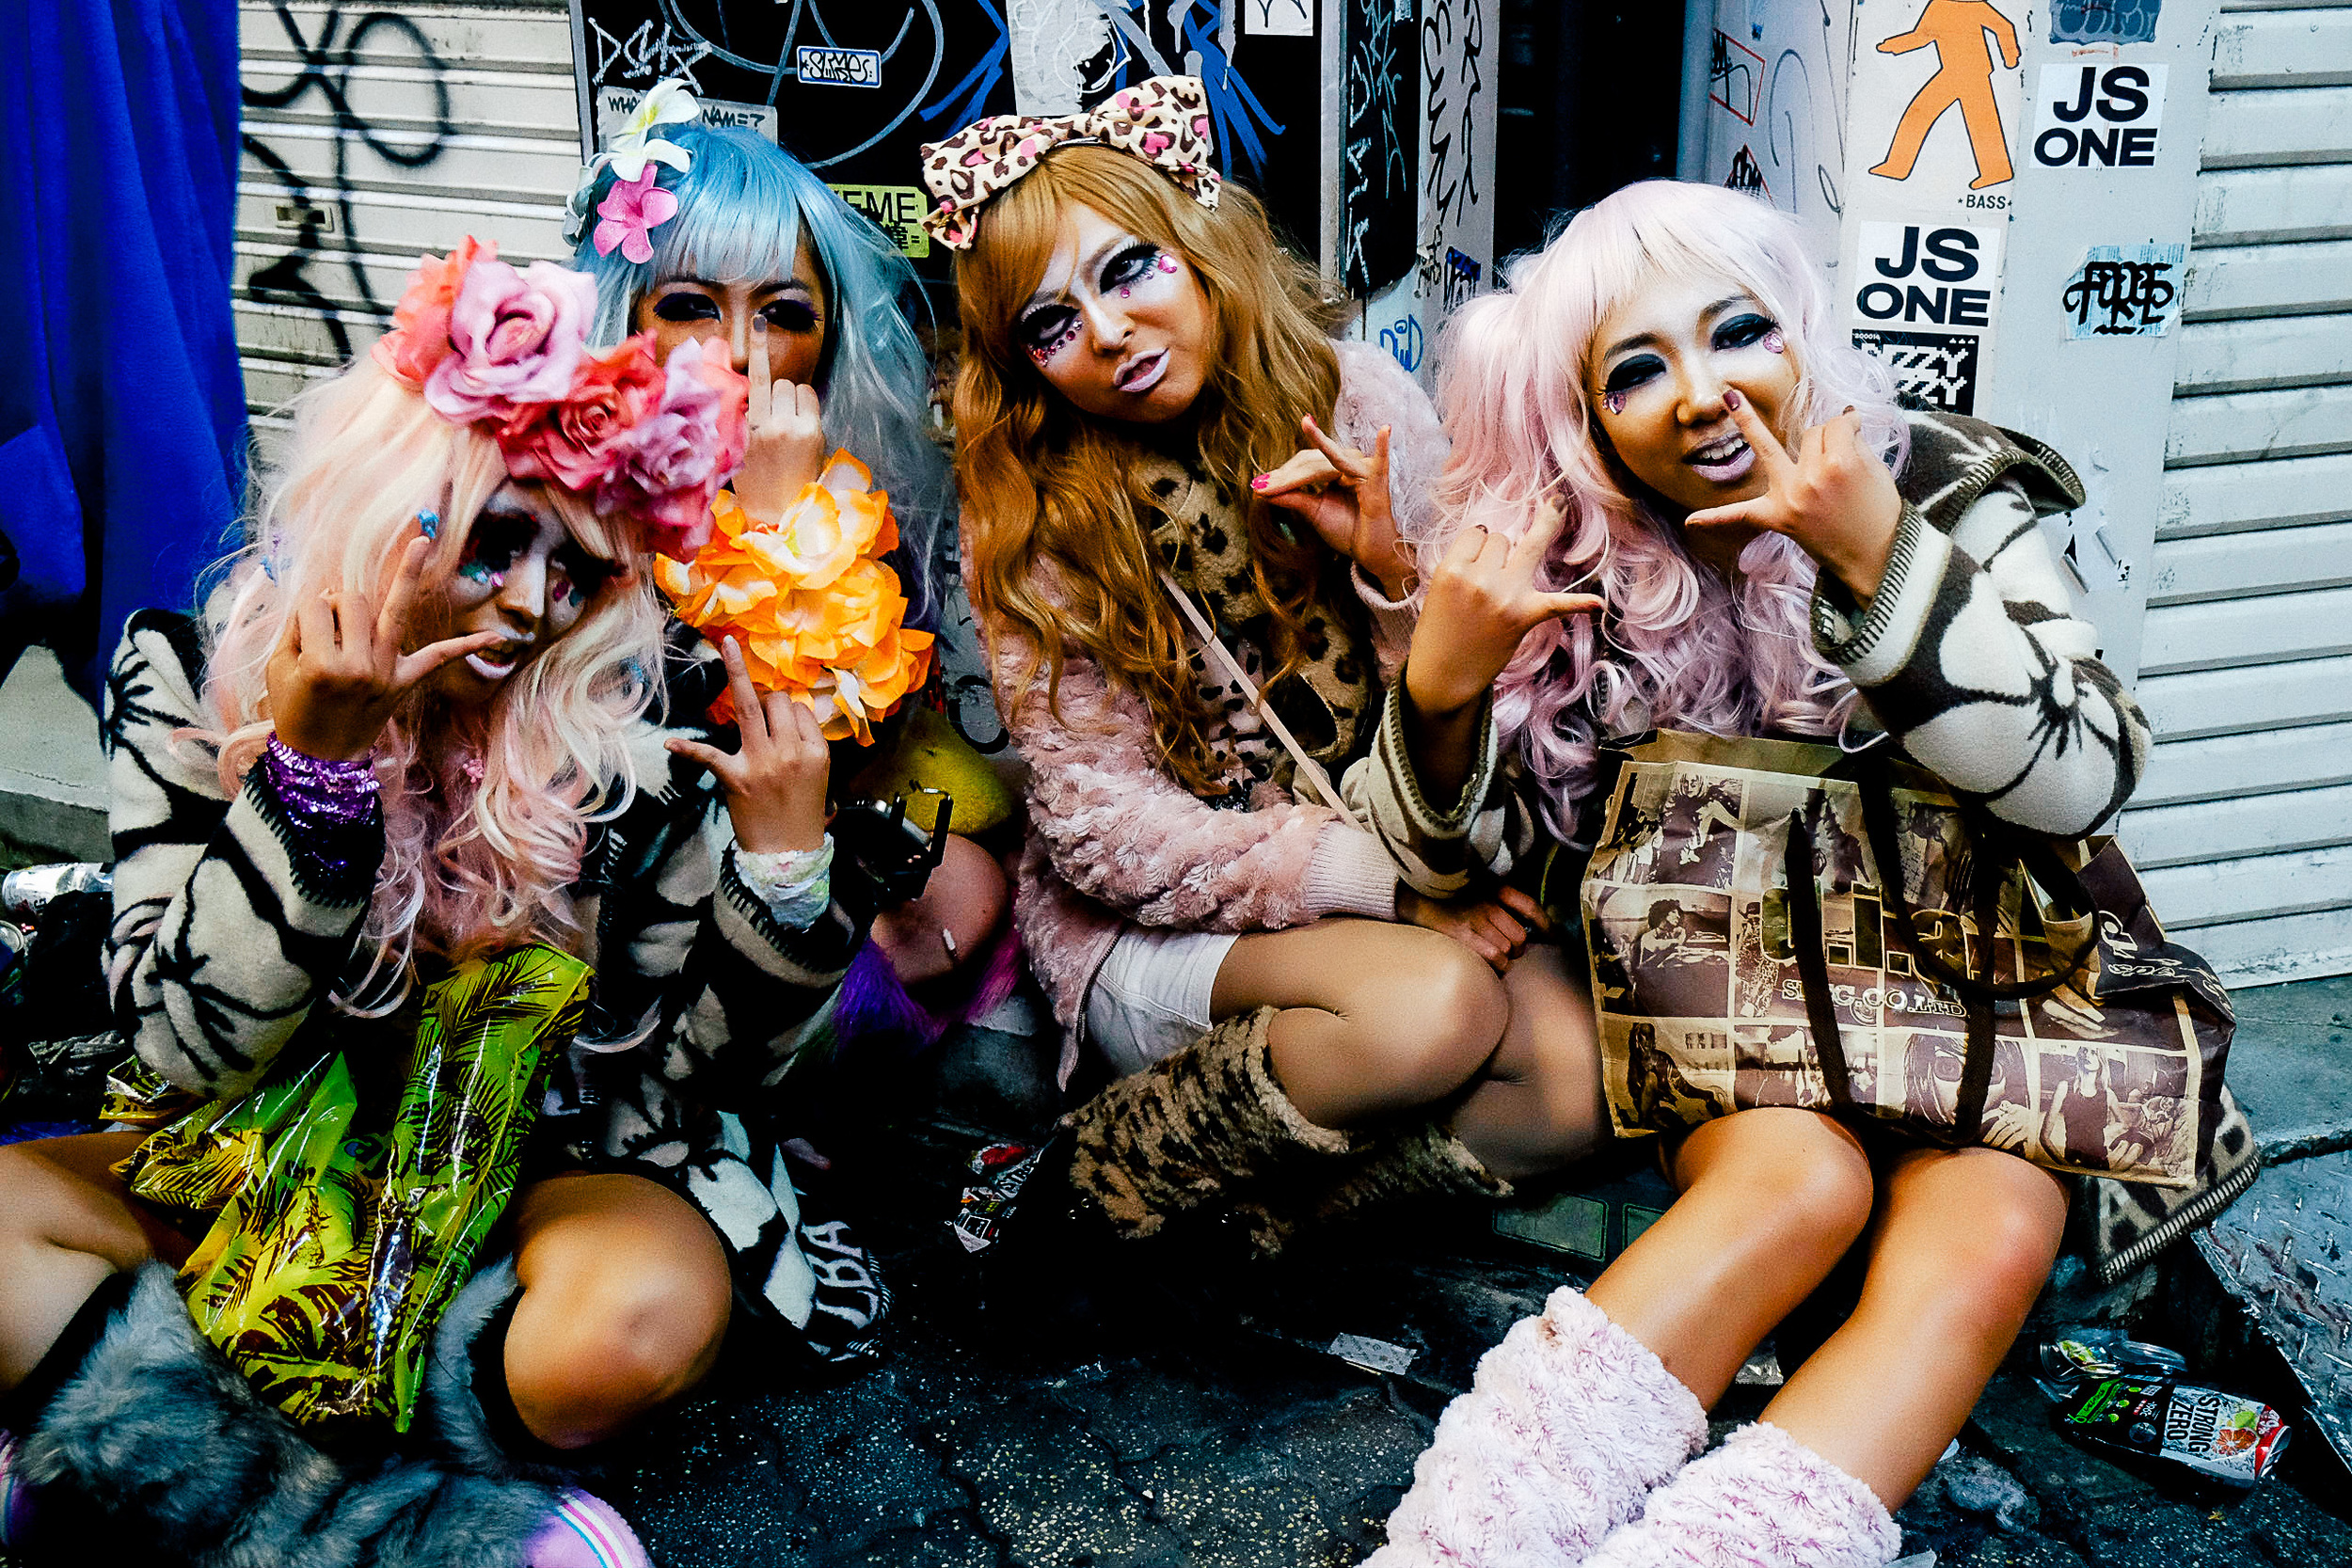 Girls dressed as anime characters.